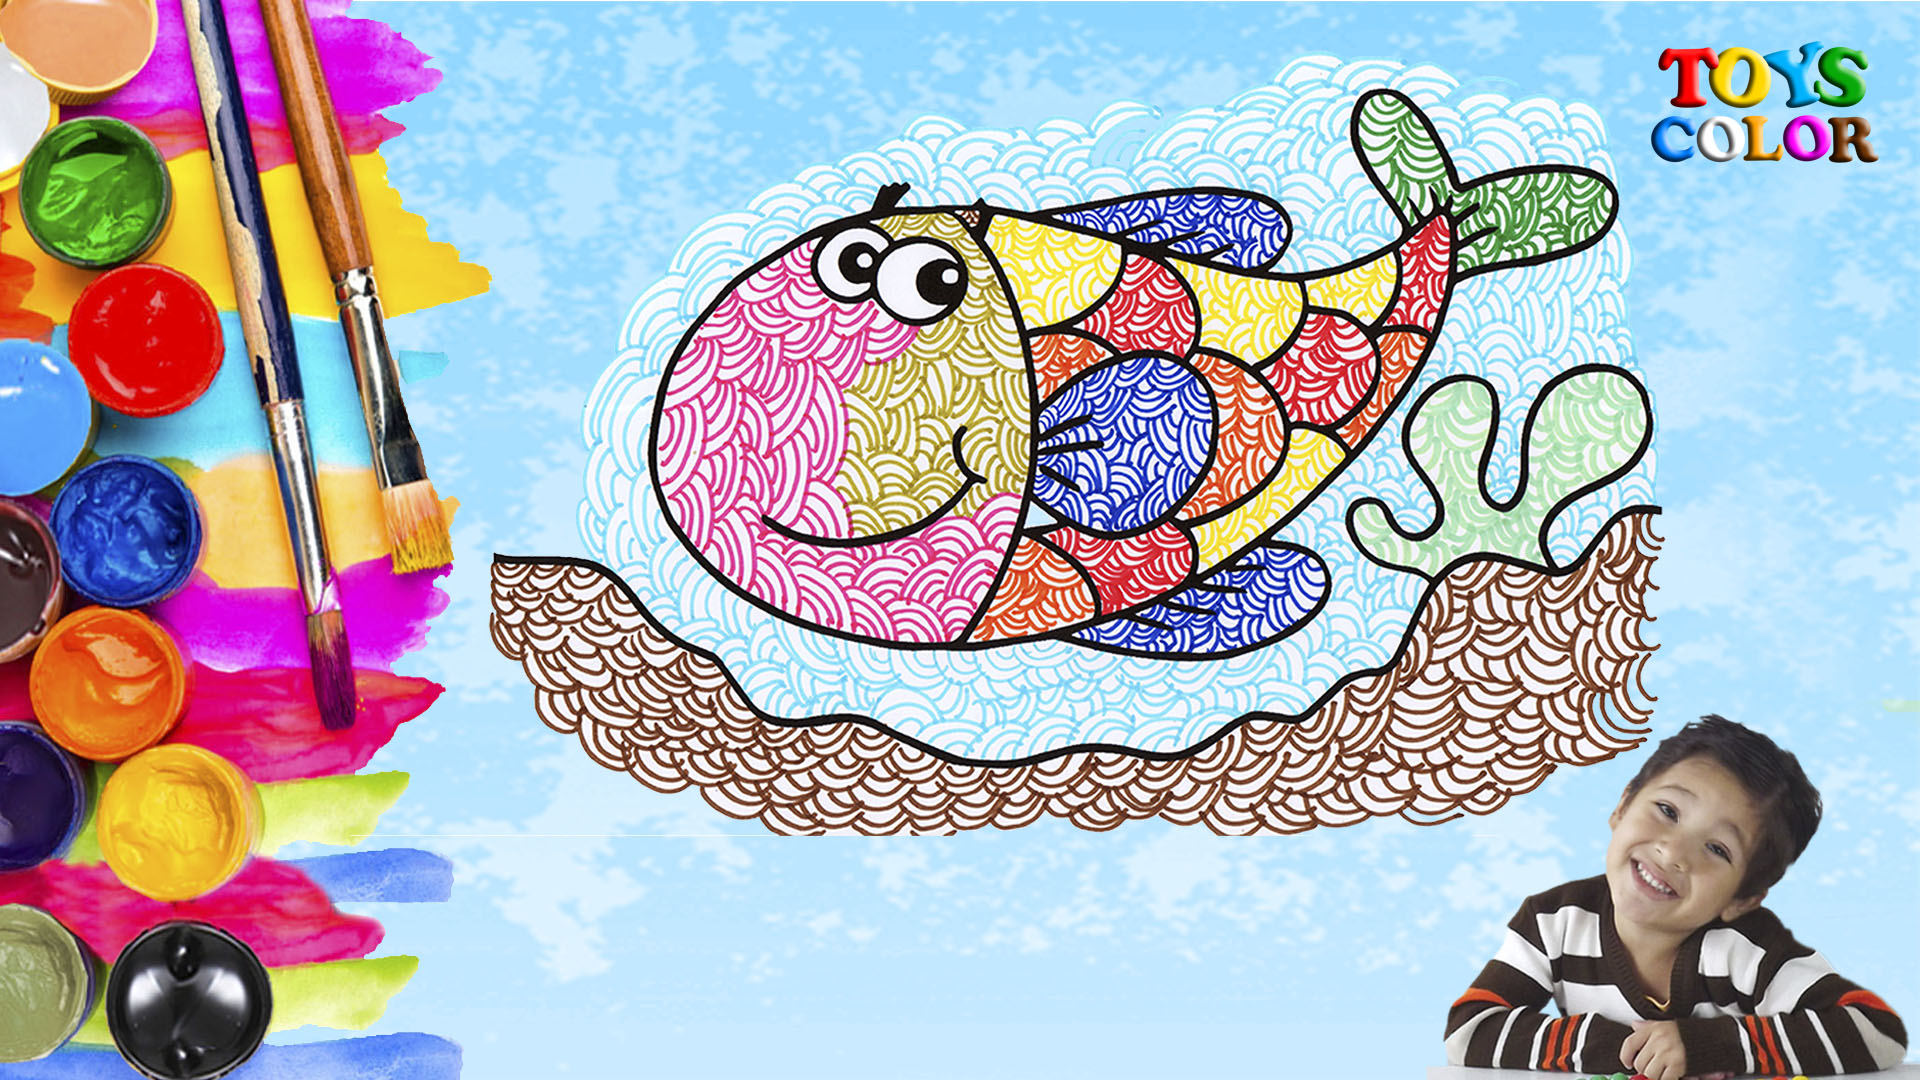 Como Dibujar y Colorear un Pez de Colores Como Dibujar un Pez How to Draw and Color a Fish of Colors